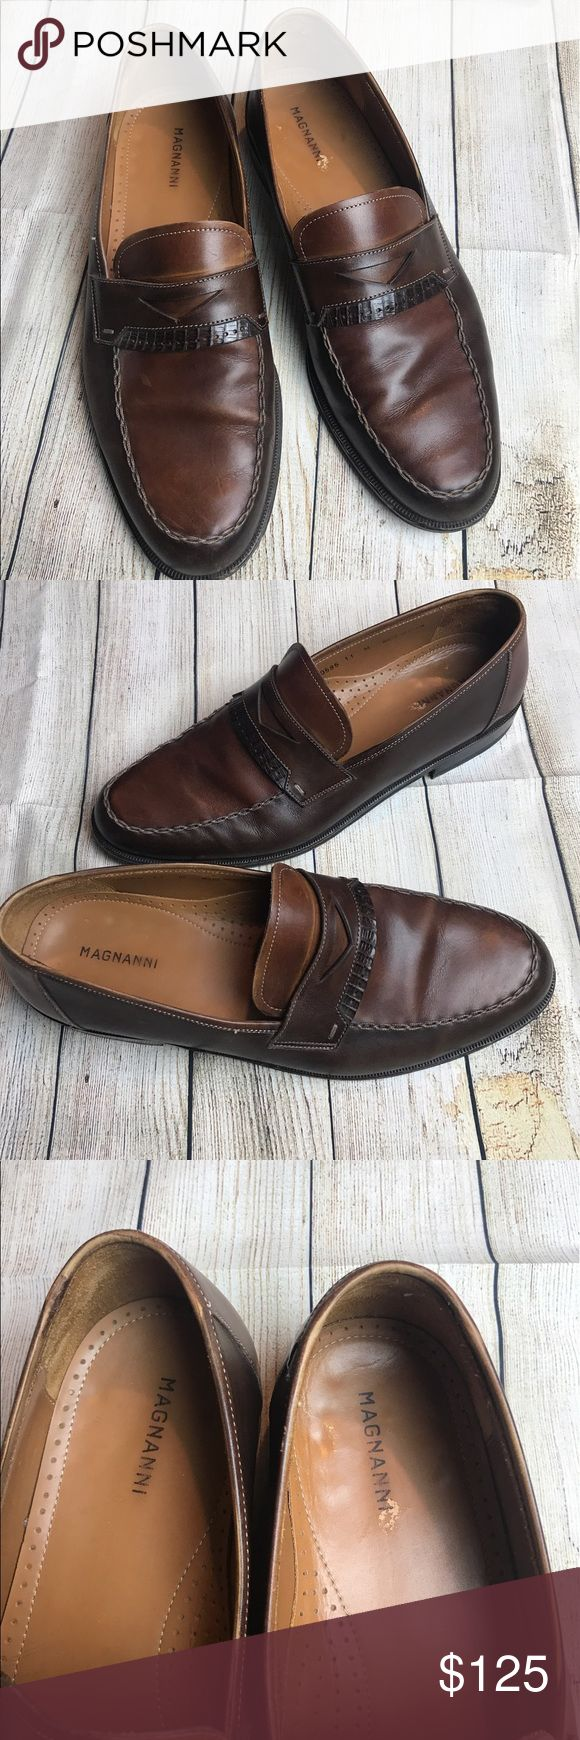 Magnanni lizard penny loafer dress shoe size 11 Excellent condition! Please see ...